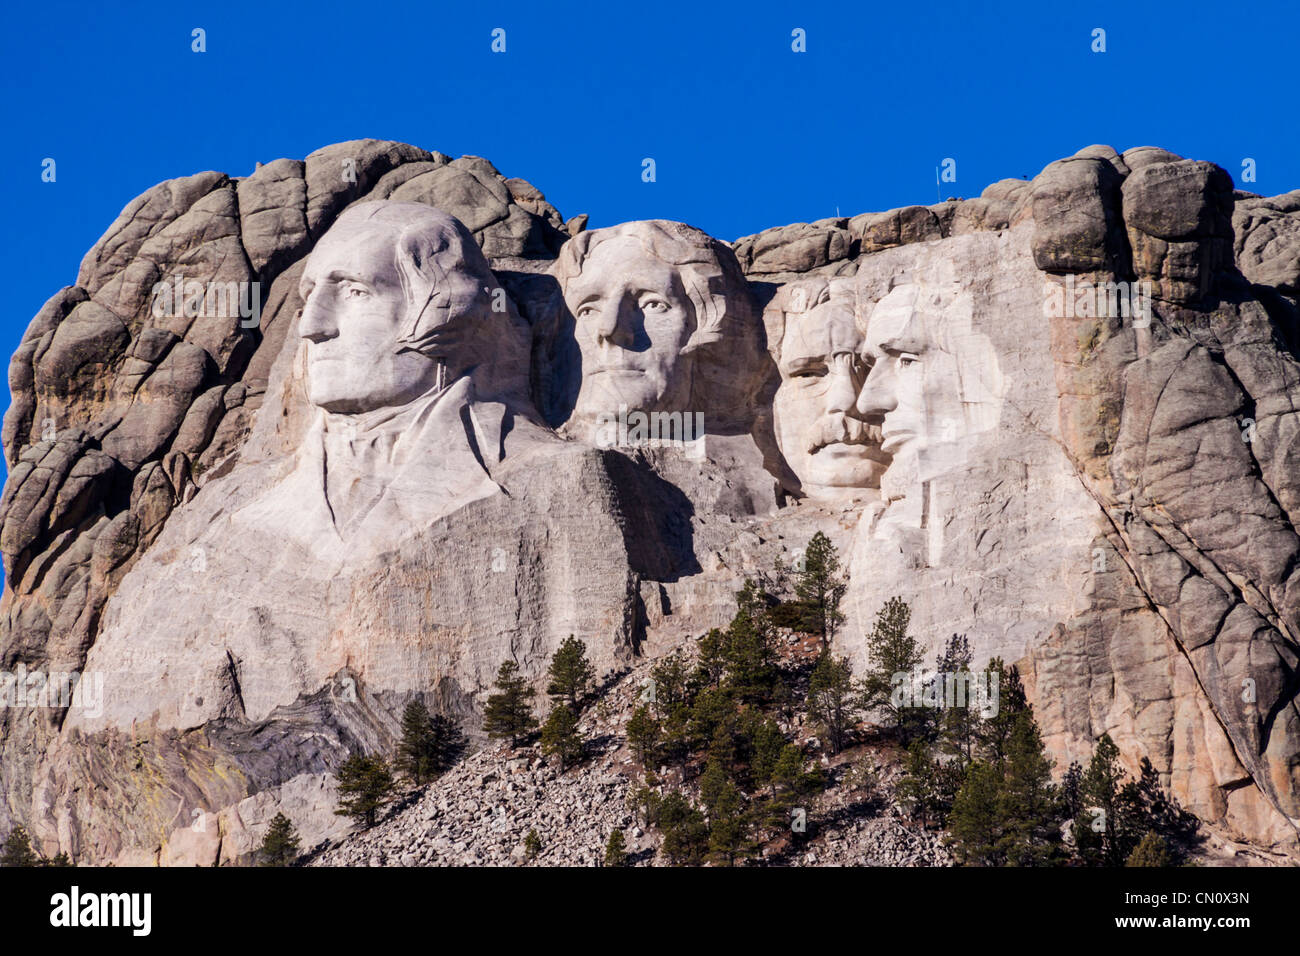 President sculptures Mount Rushmore National Memorial in South Dakota, a famous patriotic symbol since it was complete Stock Photo